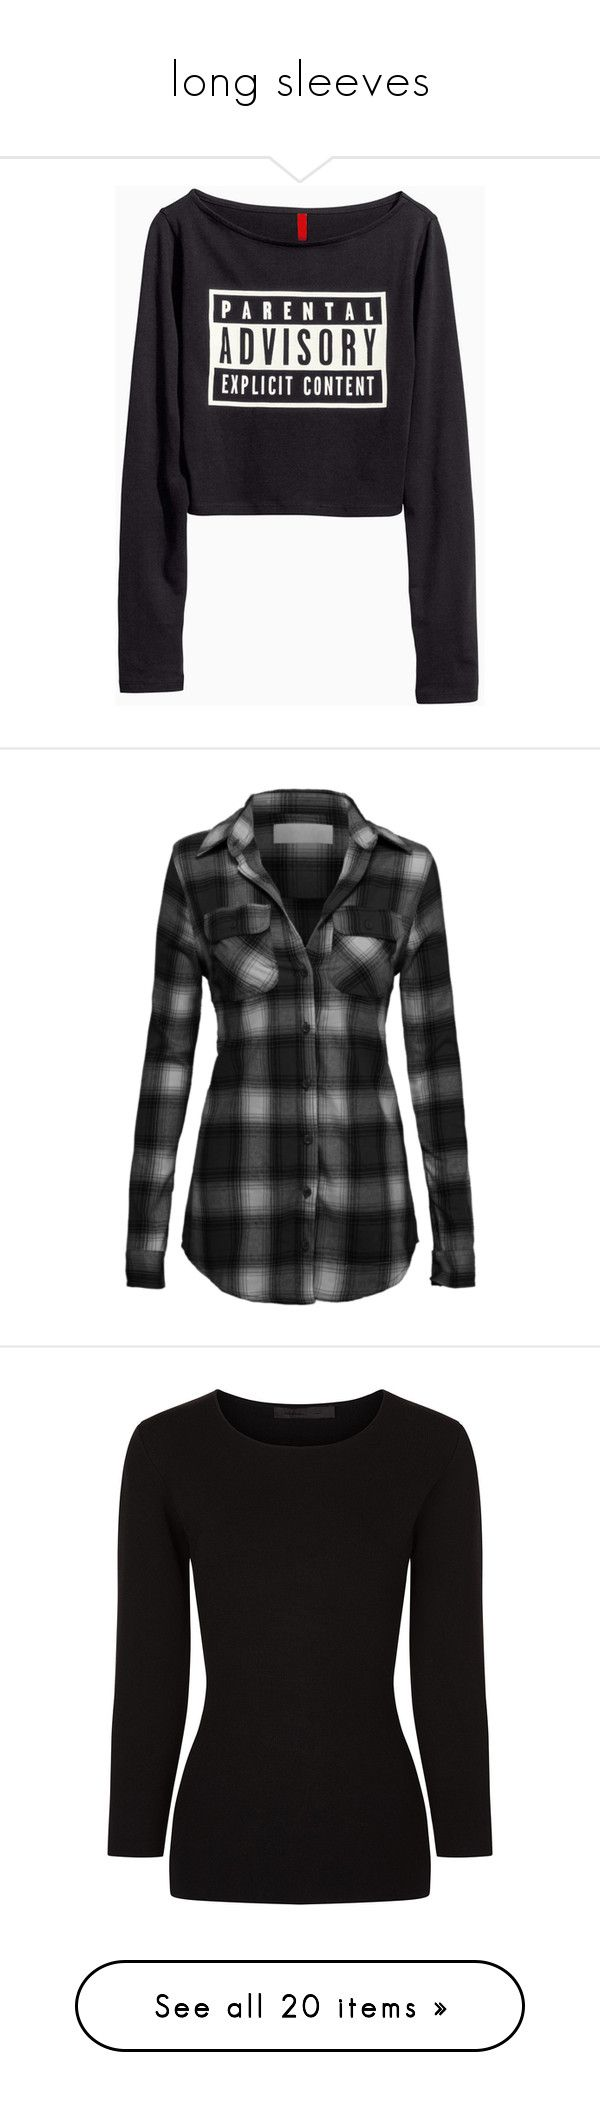 """""""long sleeves"""" by meganekomusic ❤ liked on Polyvore featuring tops, t-shirts, shirts, sweaters, crop top, long-sleeve crop tops, t shirts, cut-out crop tops, long sleeve shirts and long sleeve crop top"""